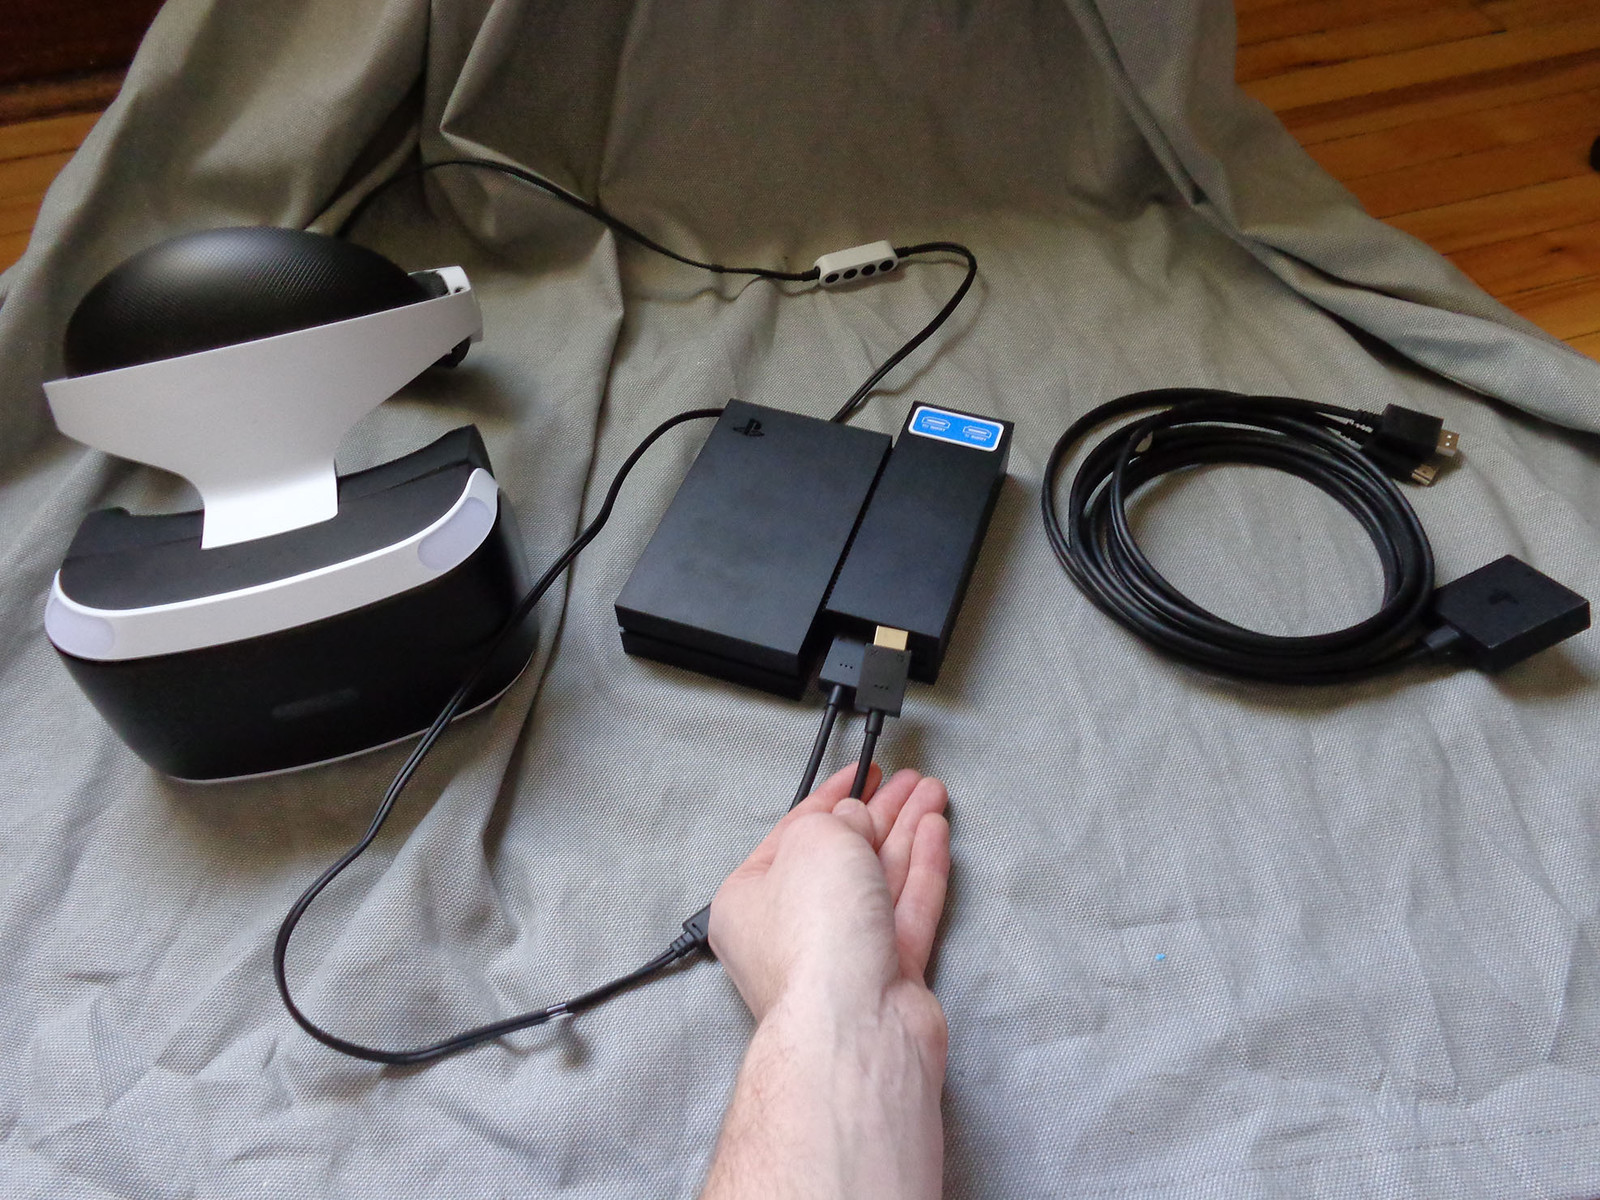 Remove the extension cable and plug the HMD directly into the processing unit.